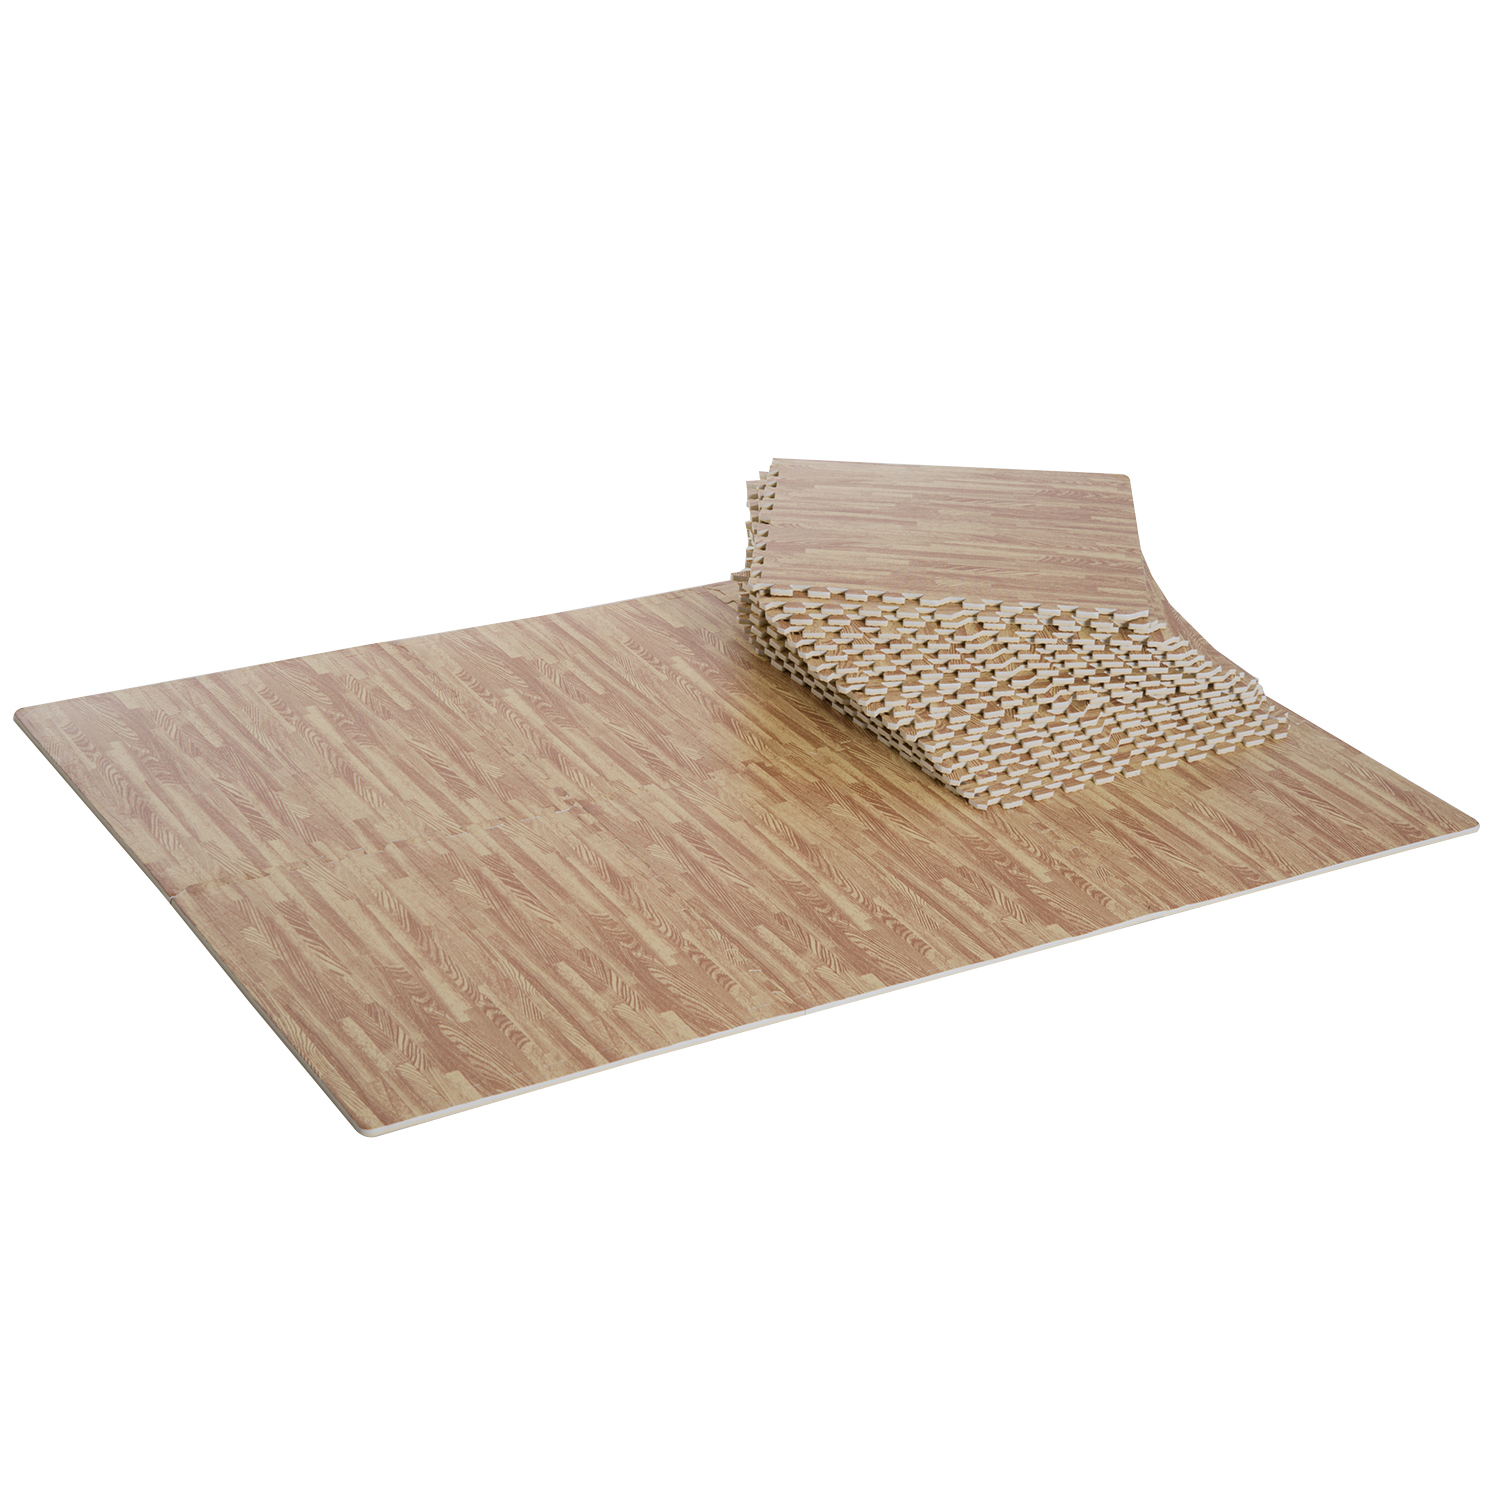 Homcom Tapis Interconnectables en Mousse Marron 62 x 62 x 1 cm